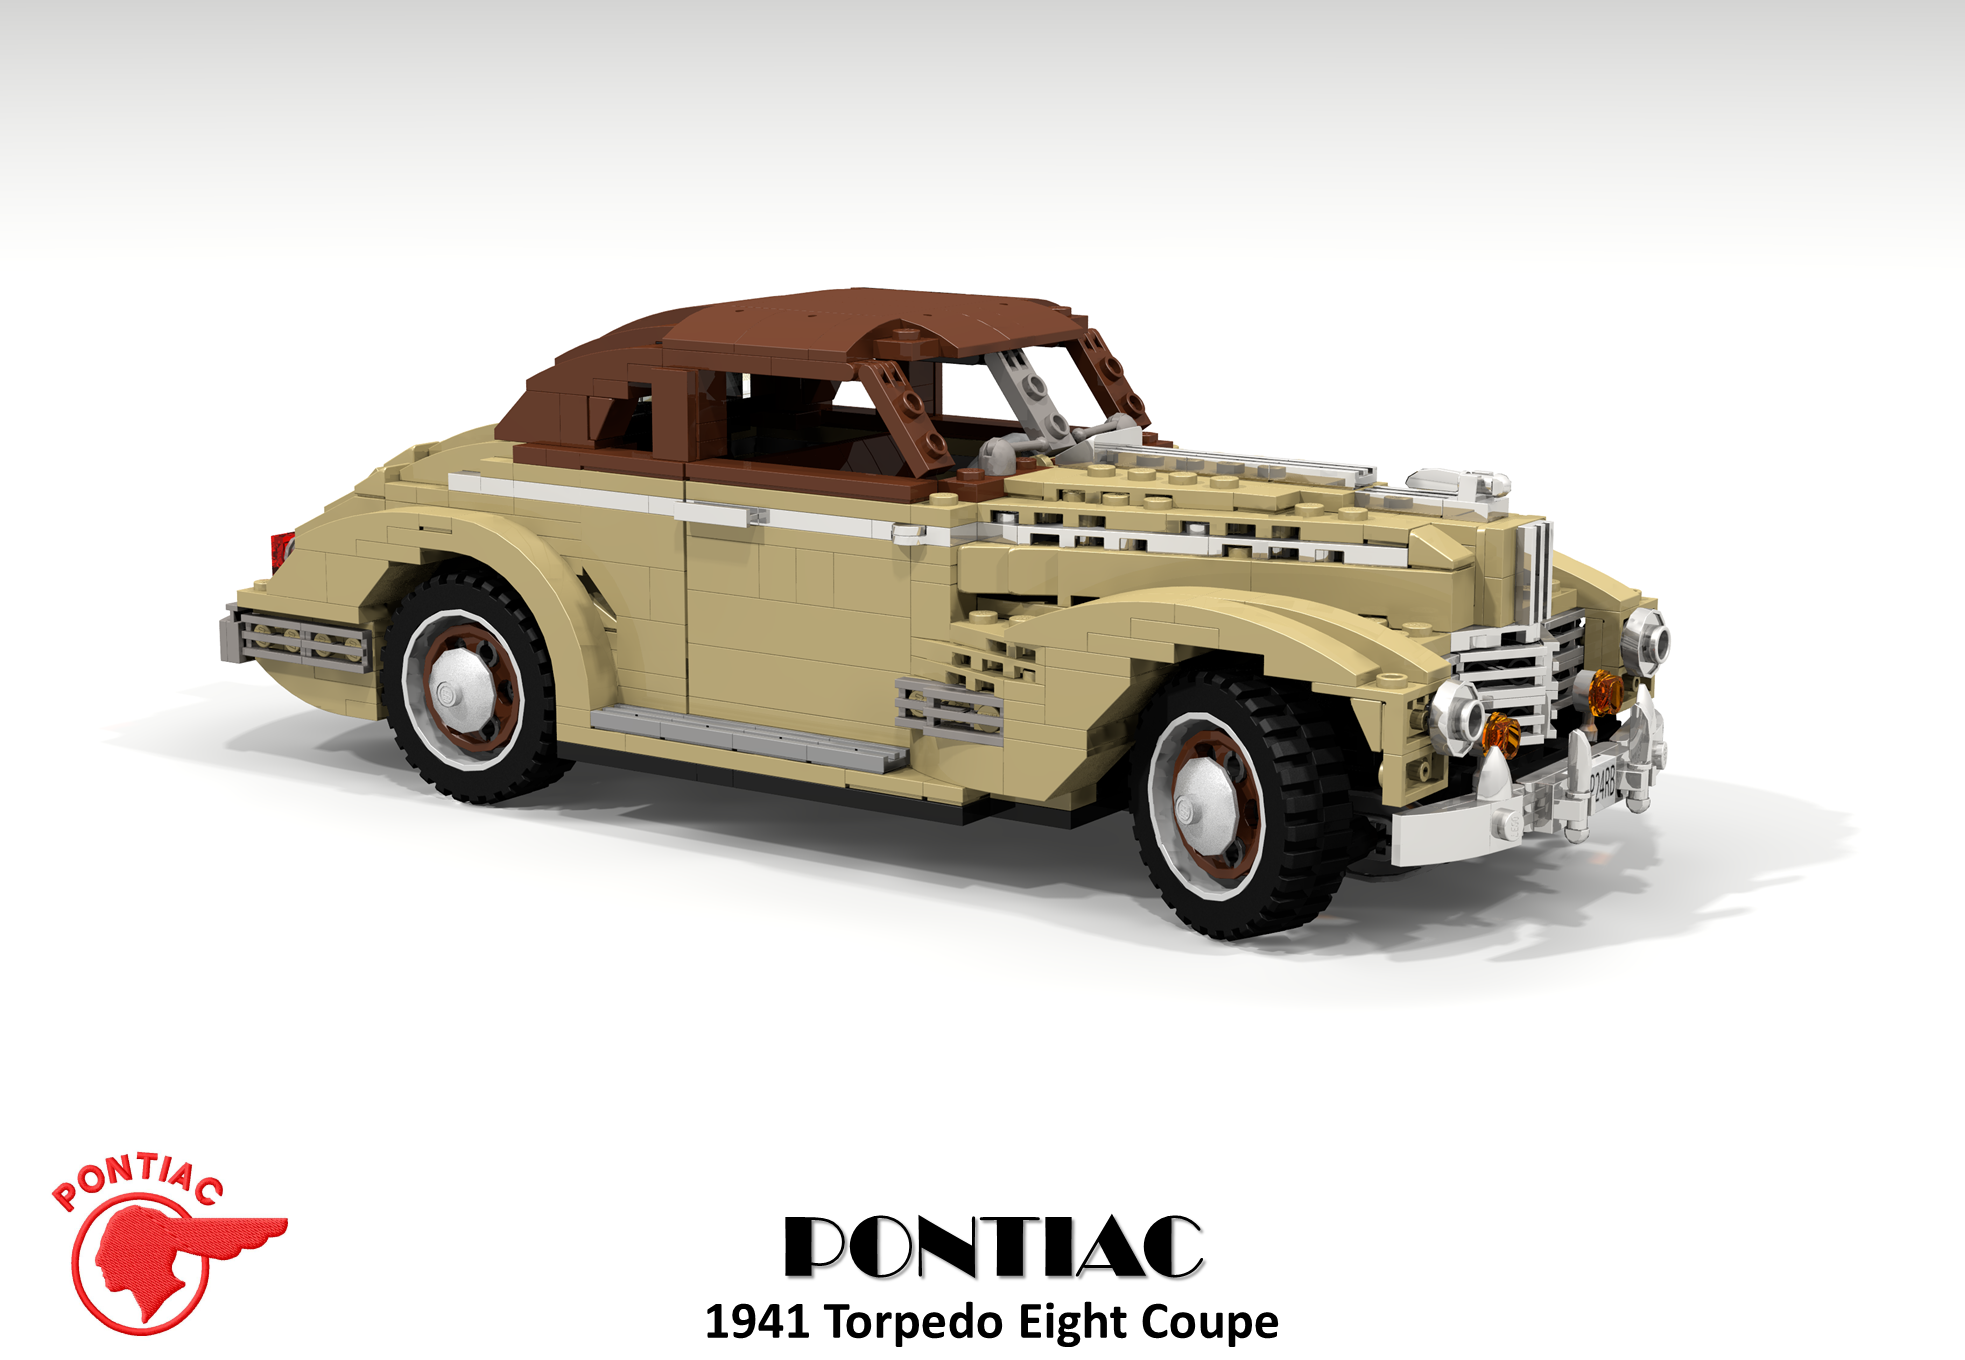 pontiac_1941_torpedo_eight_coupe_01.png